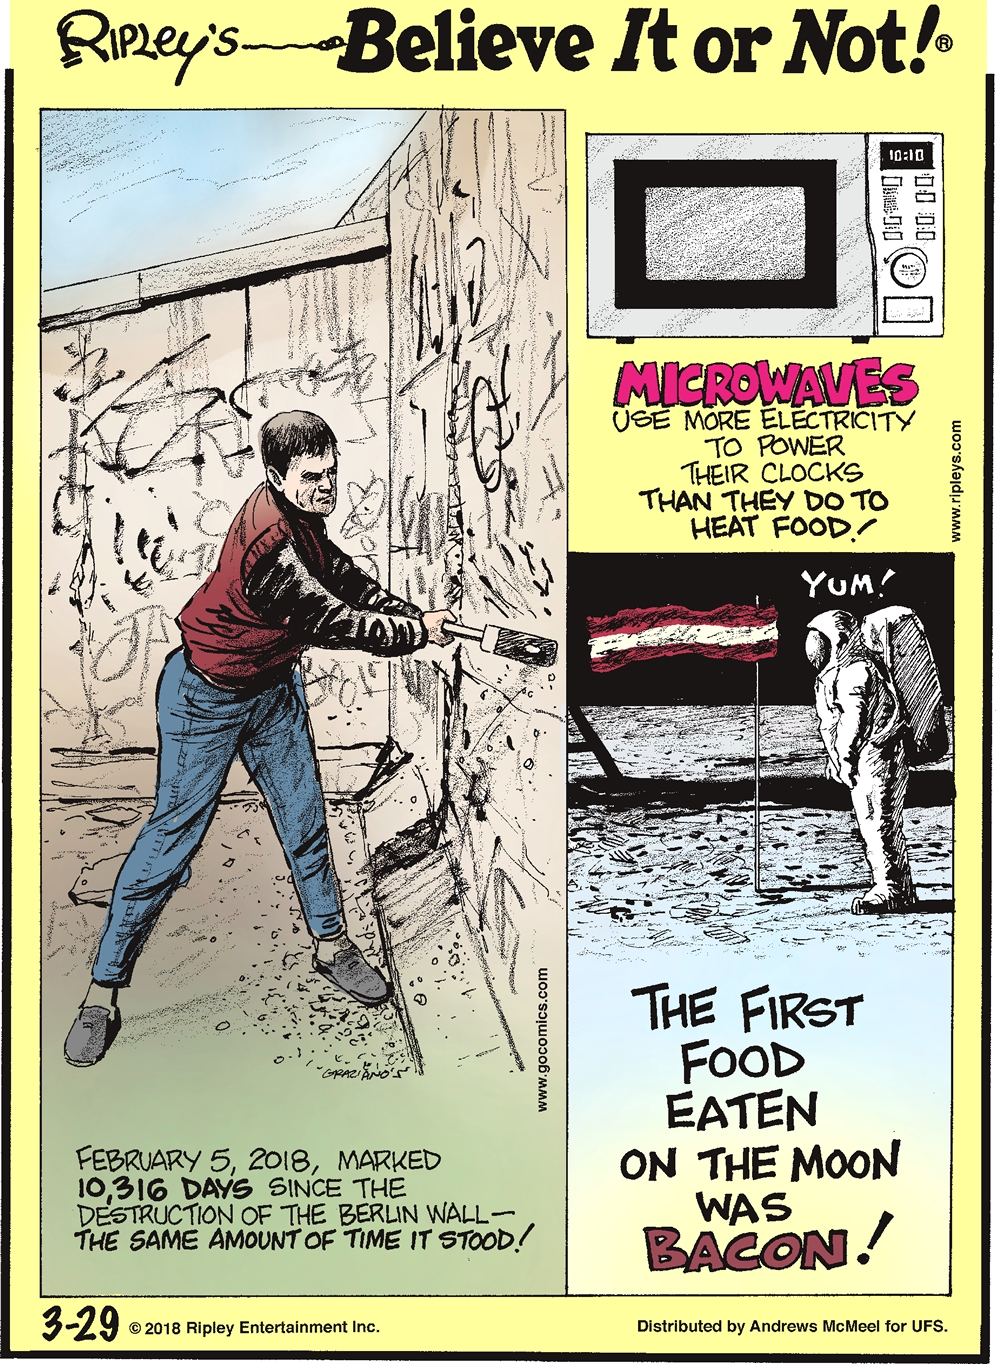 February 5, 2018, marked 10,316 days since the destruction of The Berlin Wall - the same amount of time it stood!-------------------- Microwaves use more electricity to power their clocks than they do to heat food!-------------------- The first food eaten on the moon was bacon!